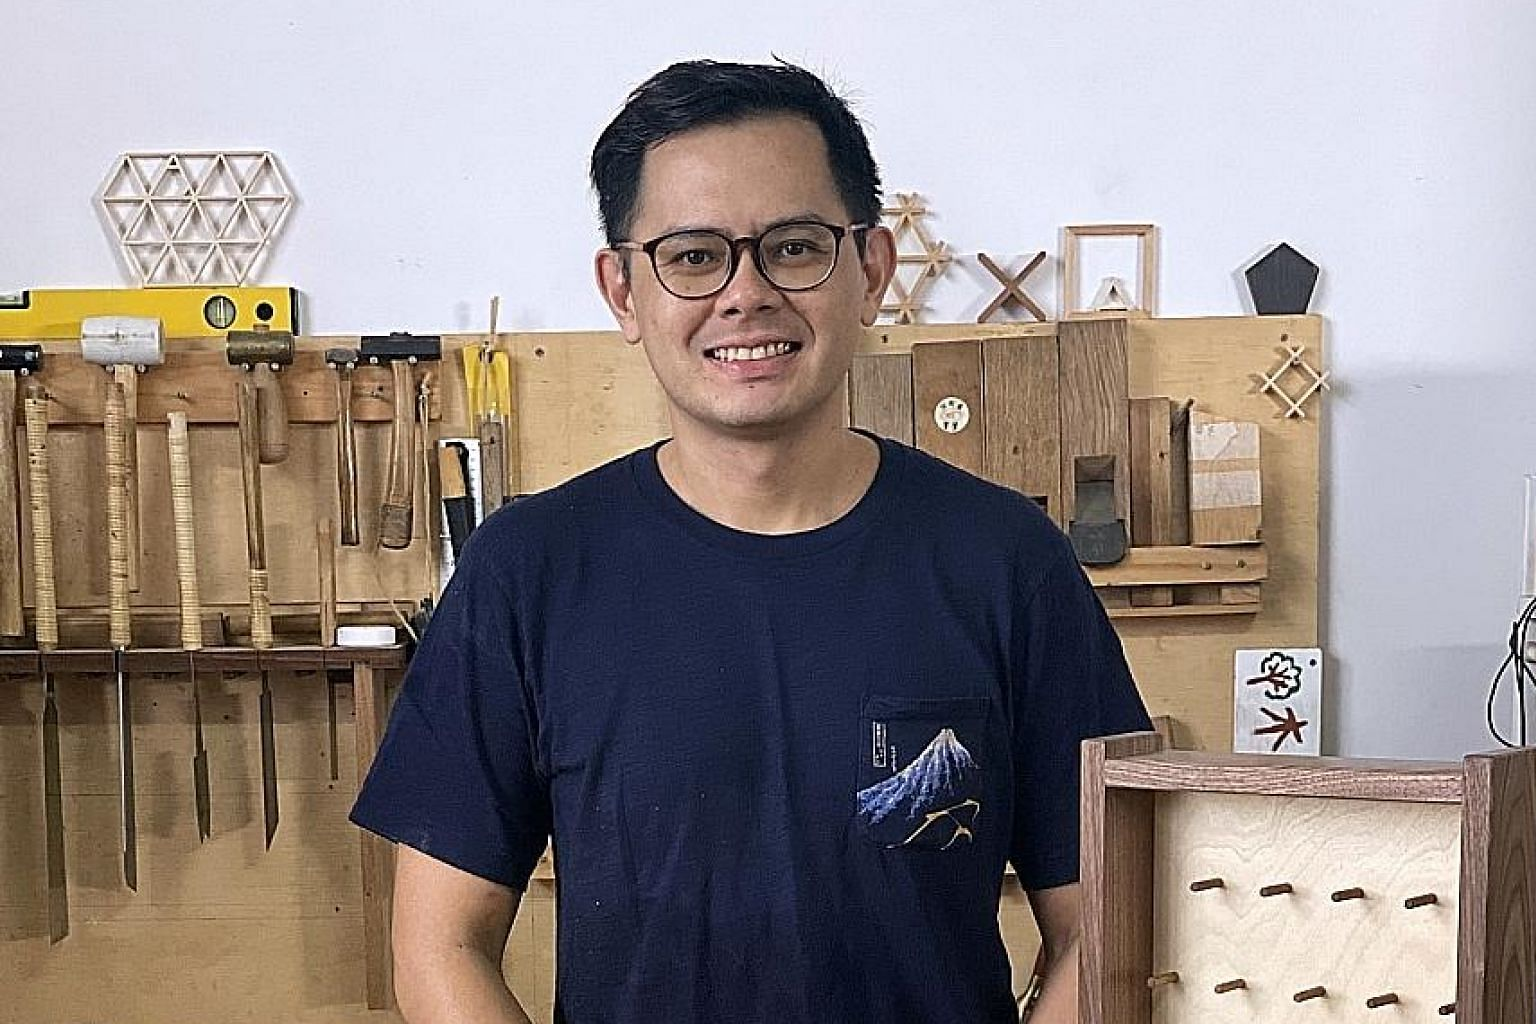 Artisan carpenter Alvan Koh will get three quarterly partial payouts of $2,400 each. While grateful for the help, he says the explanation for the reduced amount could be better communicated. Creative producer Sharmila Yogalingam, who lives in her par